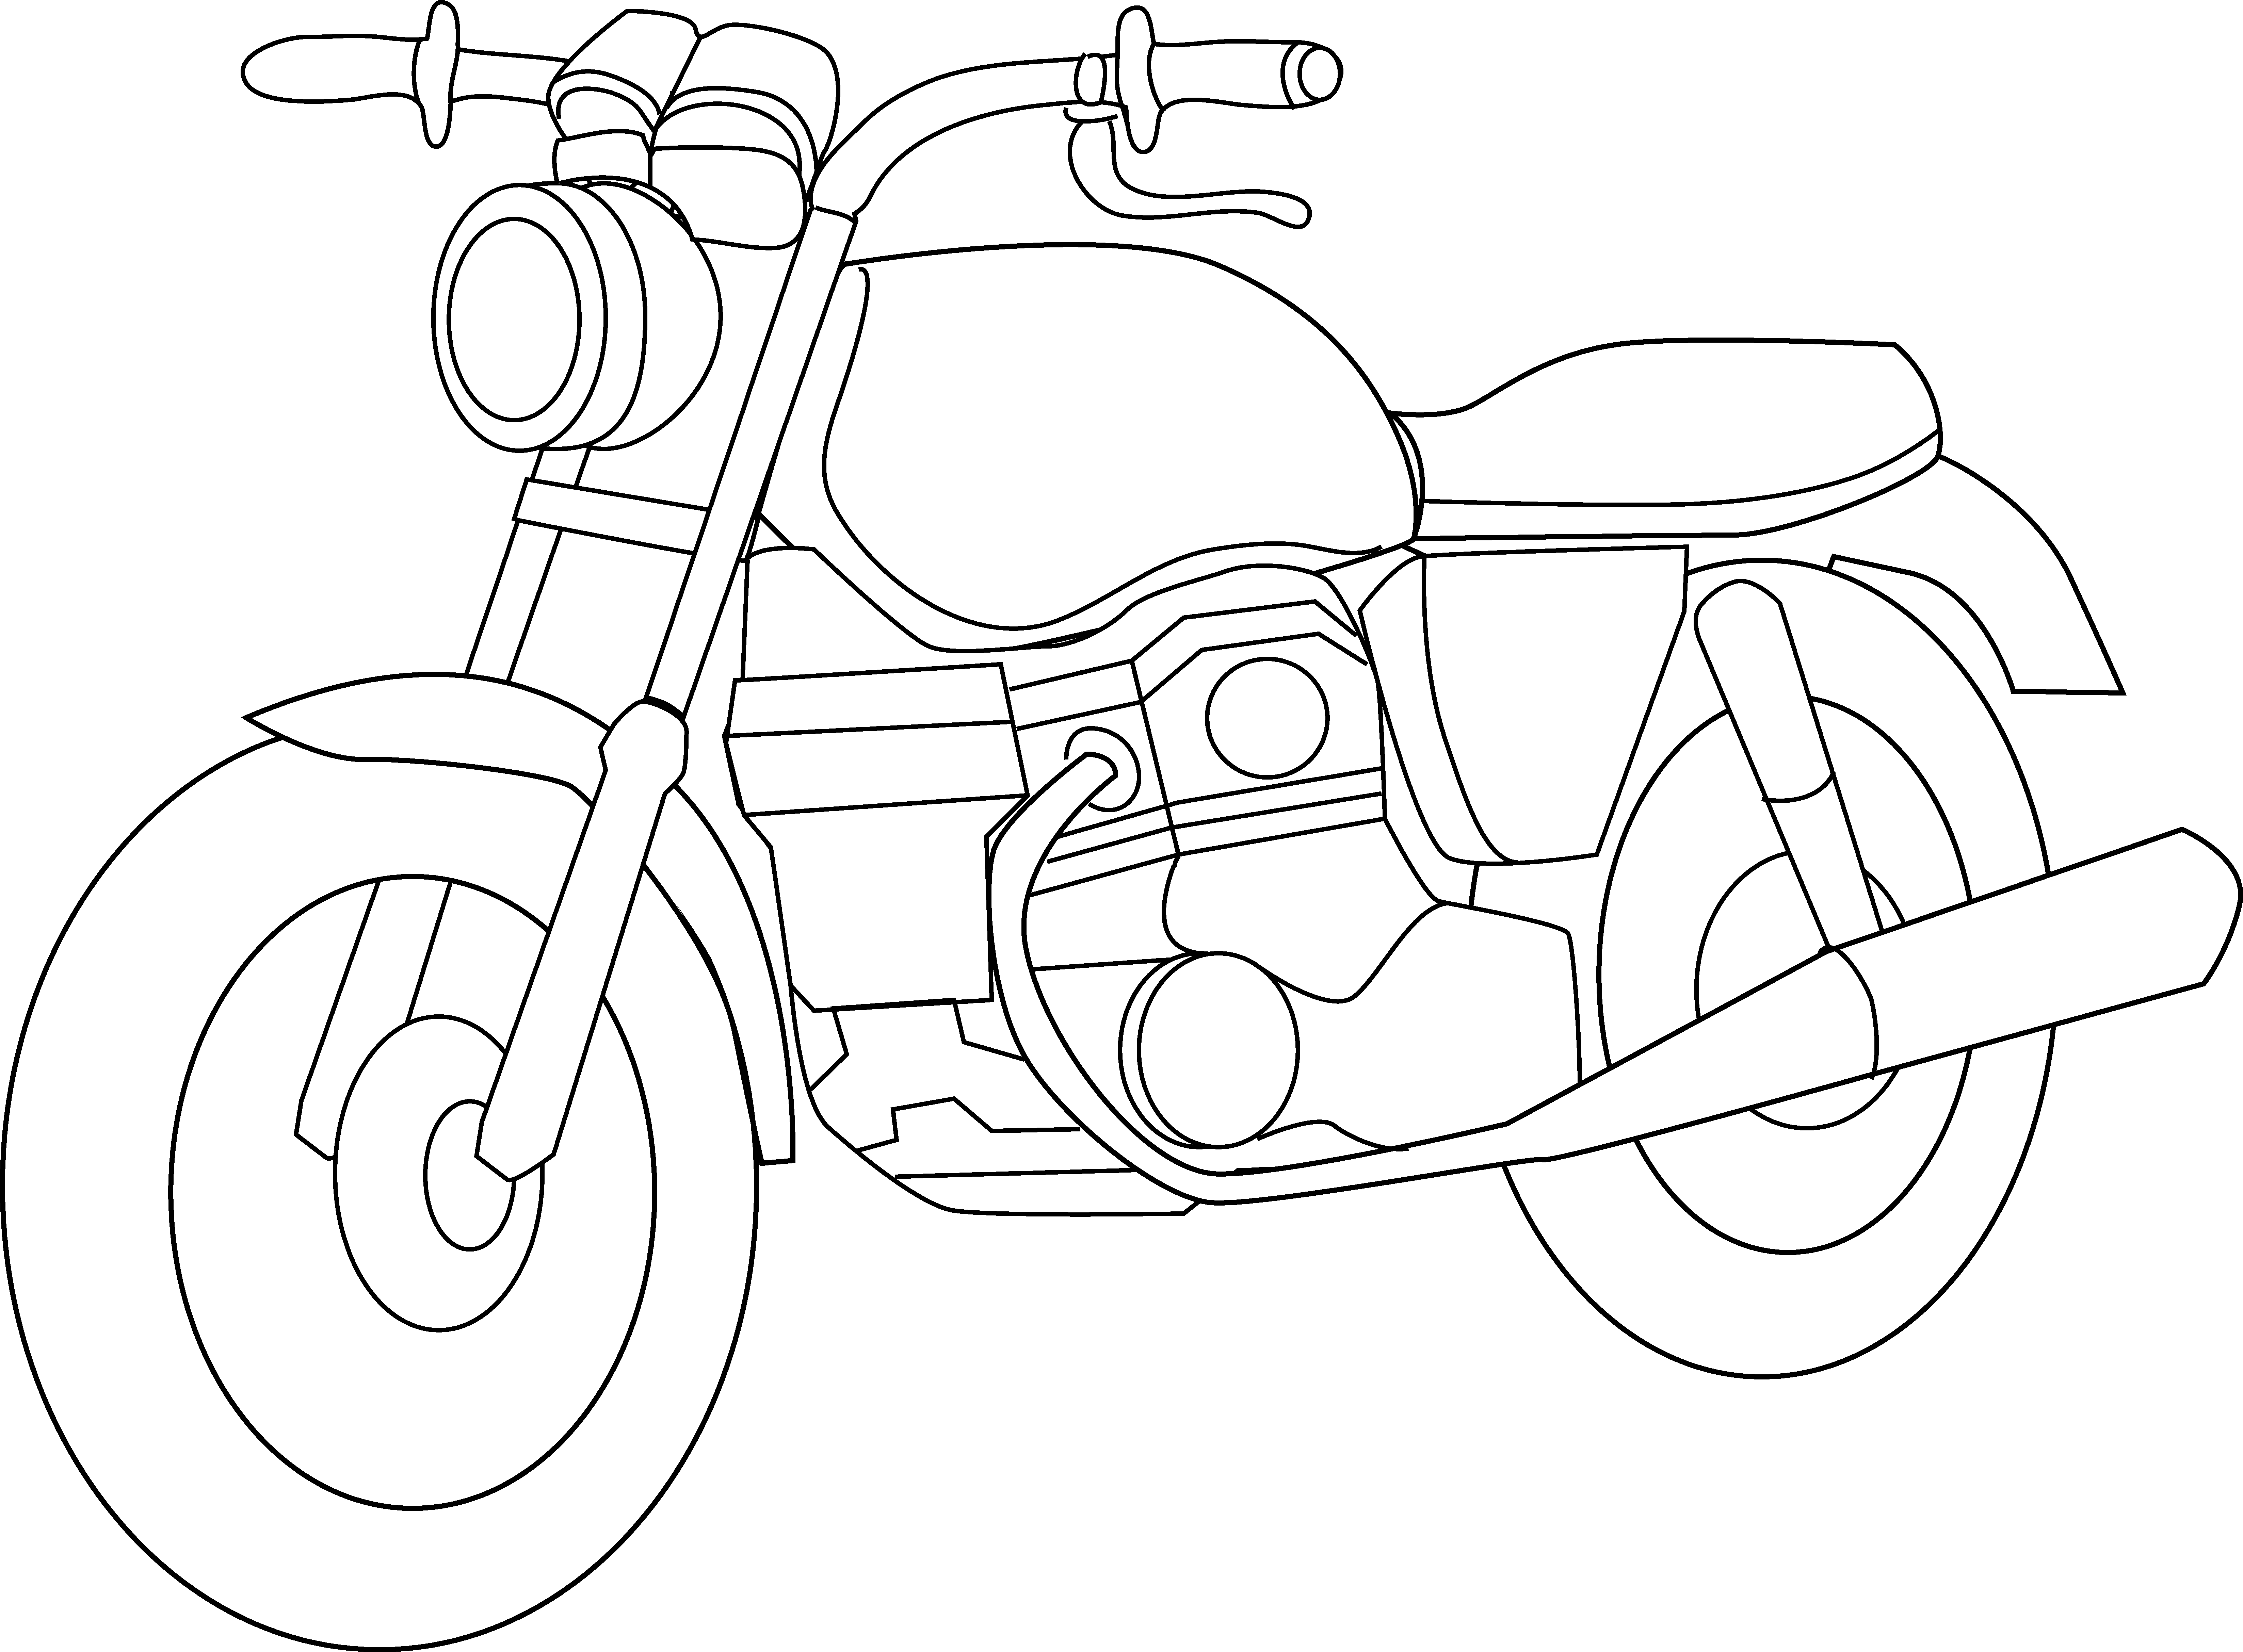 Harley clipart black and white jpg library download Motorcycle Clipart Black And White | Clipart Panda - Free Clipart ... jpg library download